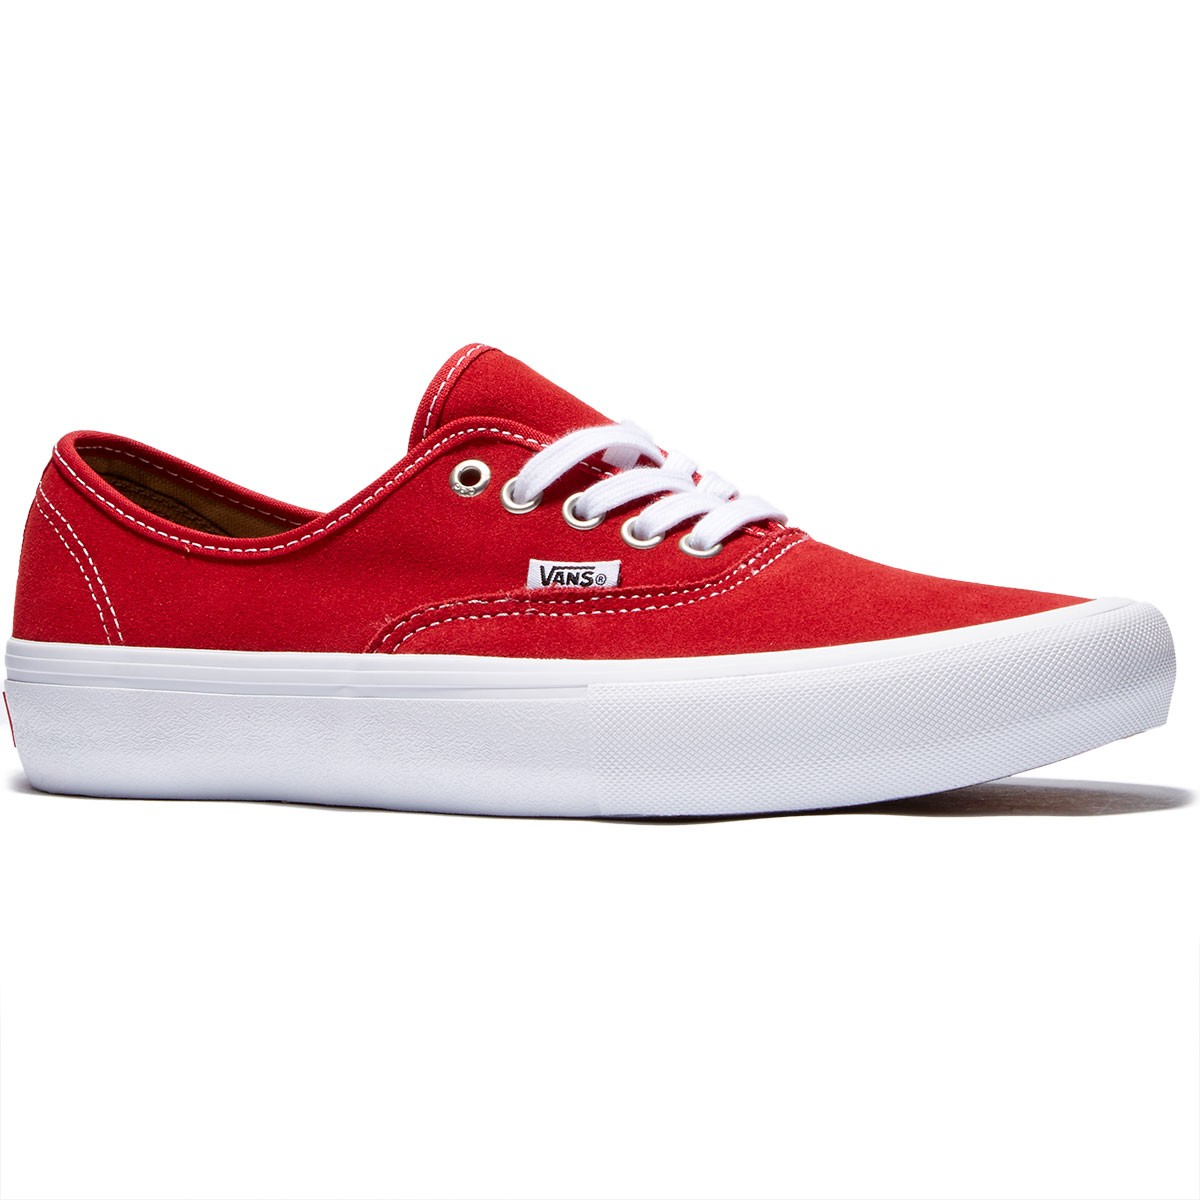 Vans Authentic Pro Shoes - Red/White - 8.0